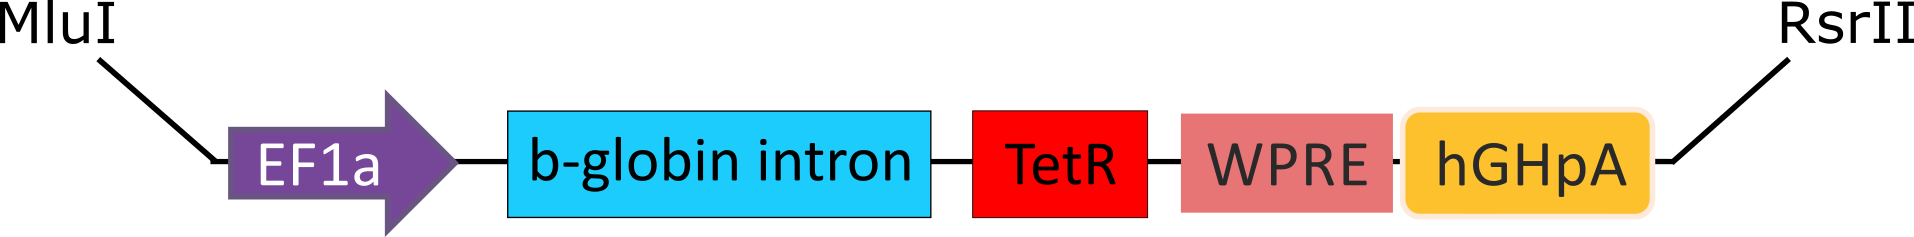 Figure 1. Schematic of the EF1a-TetR transgene.